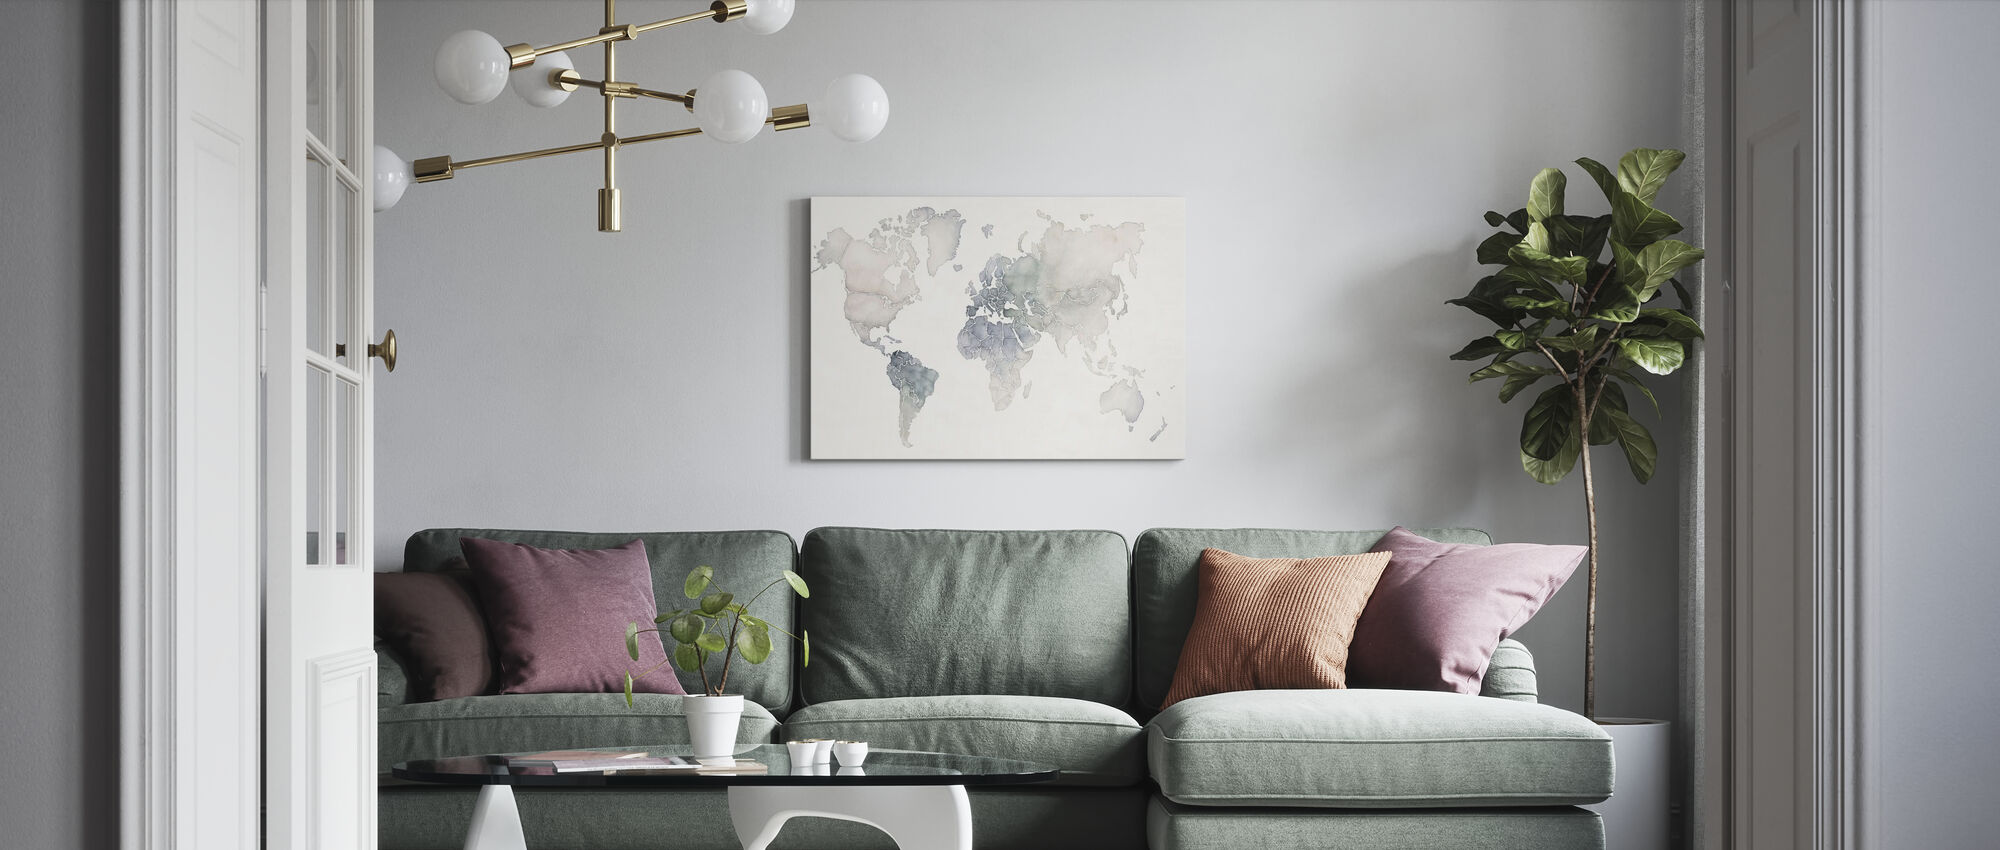 Watercolor Wanderlust - Canvas print - Living Room